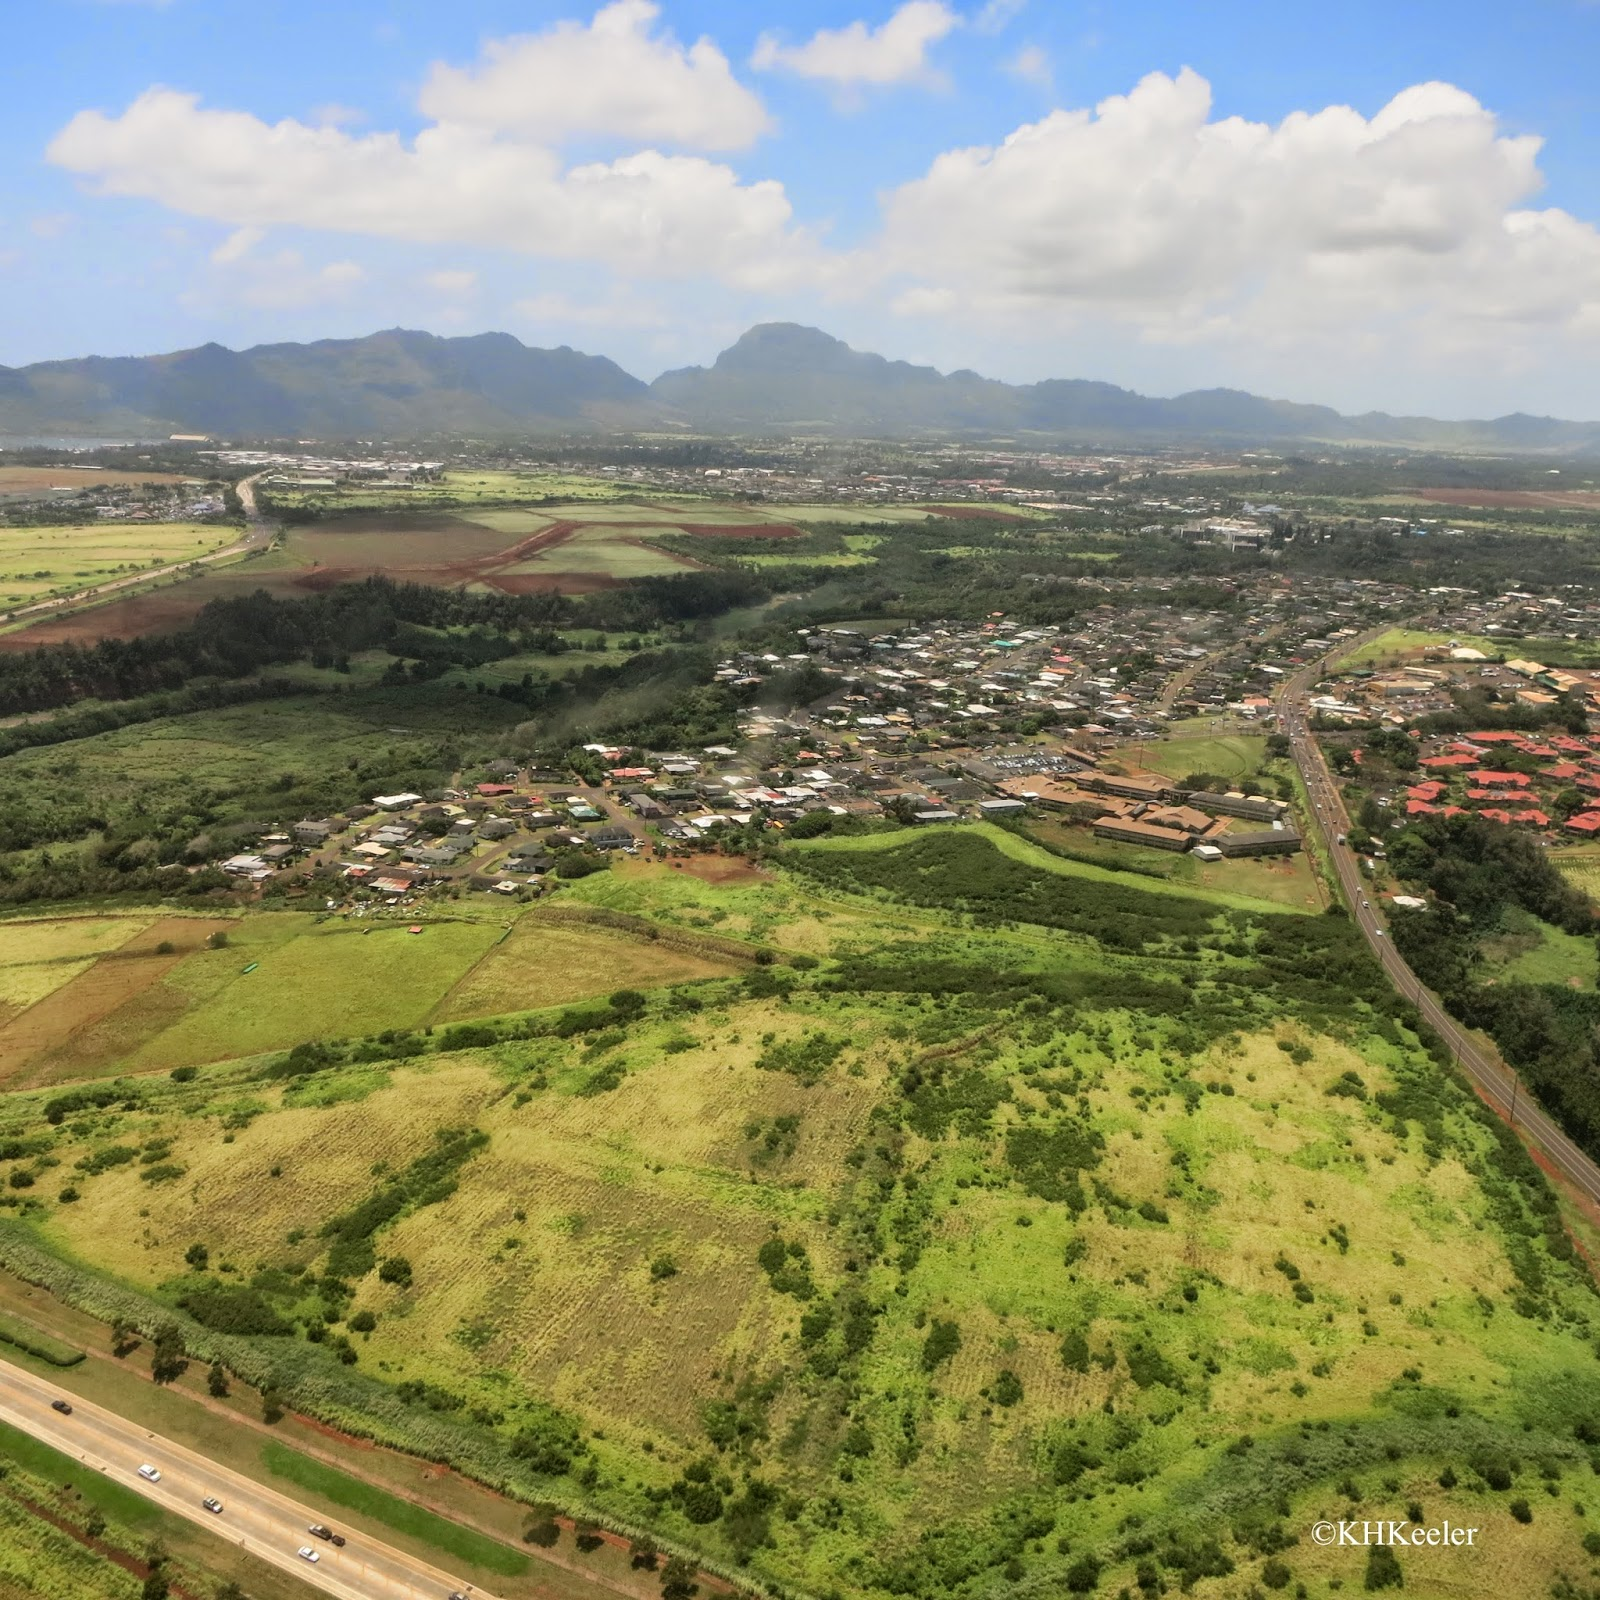 Kauai from the helicopter